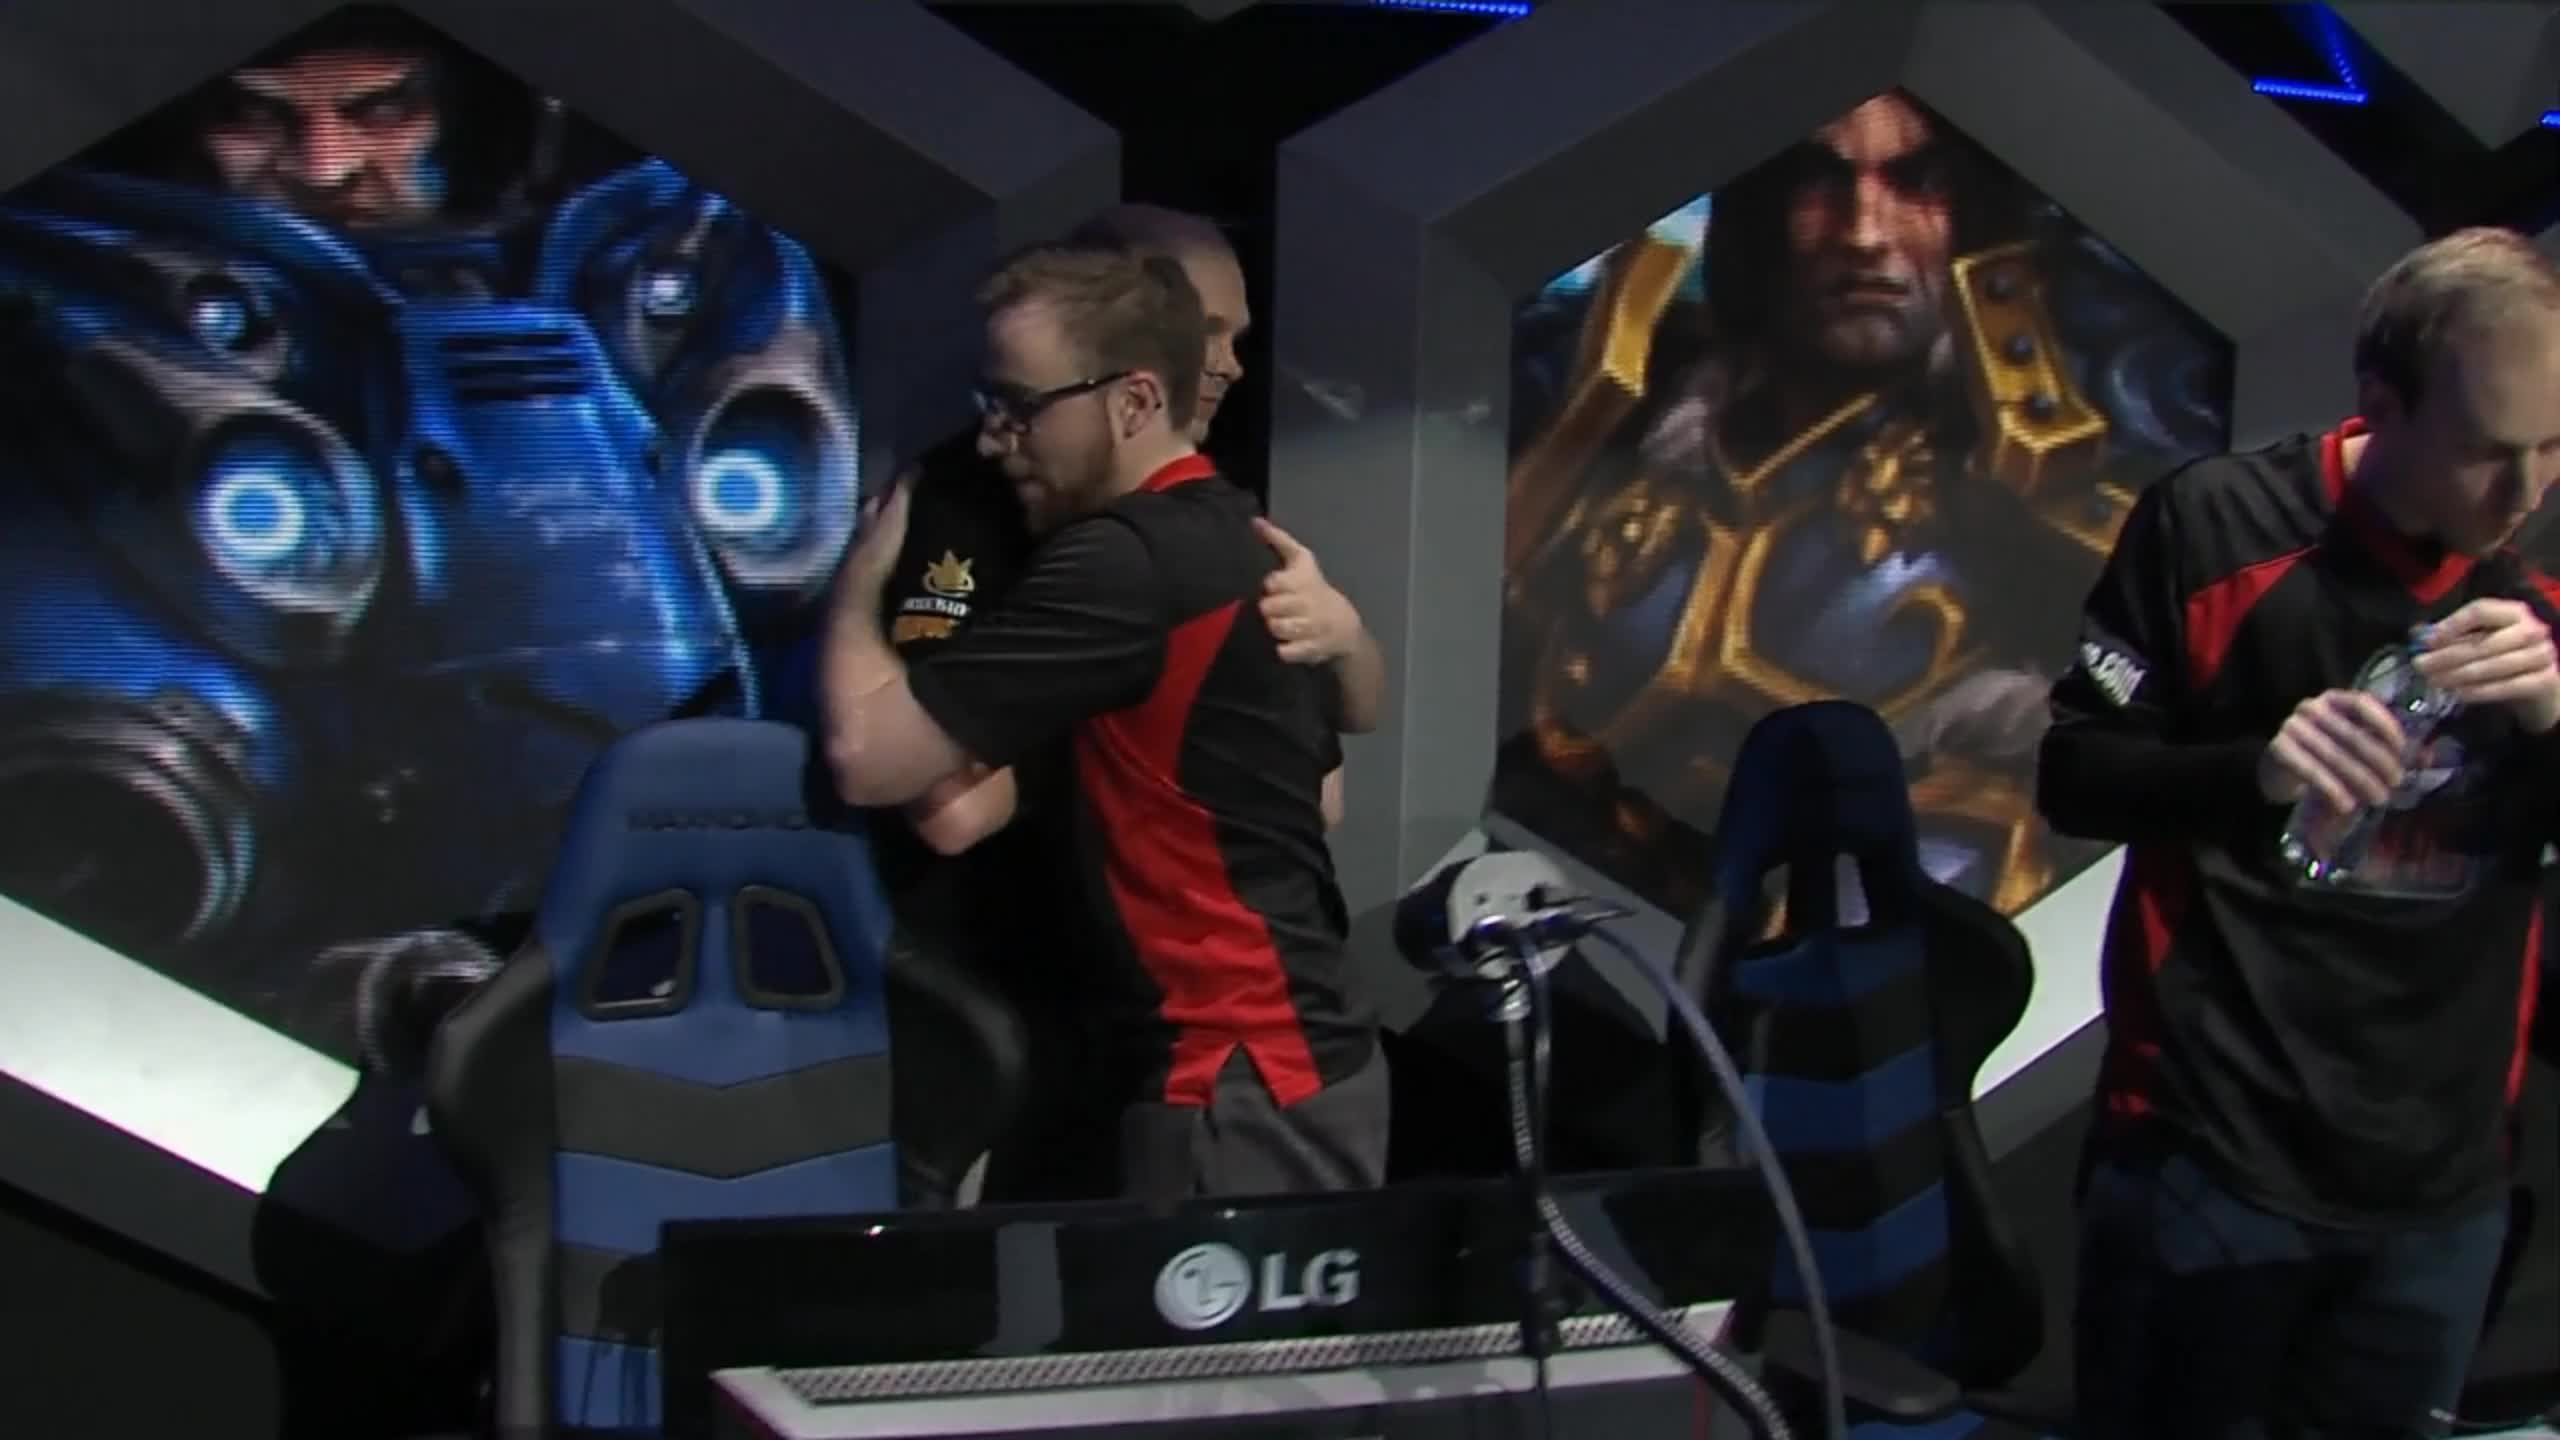 cringe, cringepics, esports, Victory celebration goes wrong. Horribly. GIFs